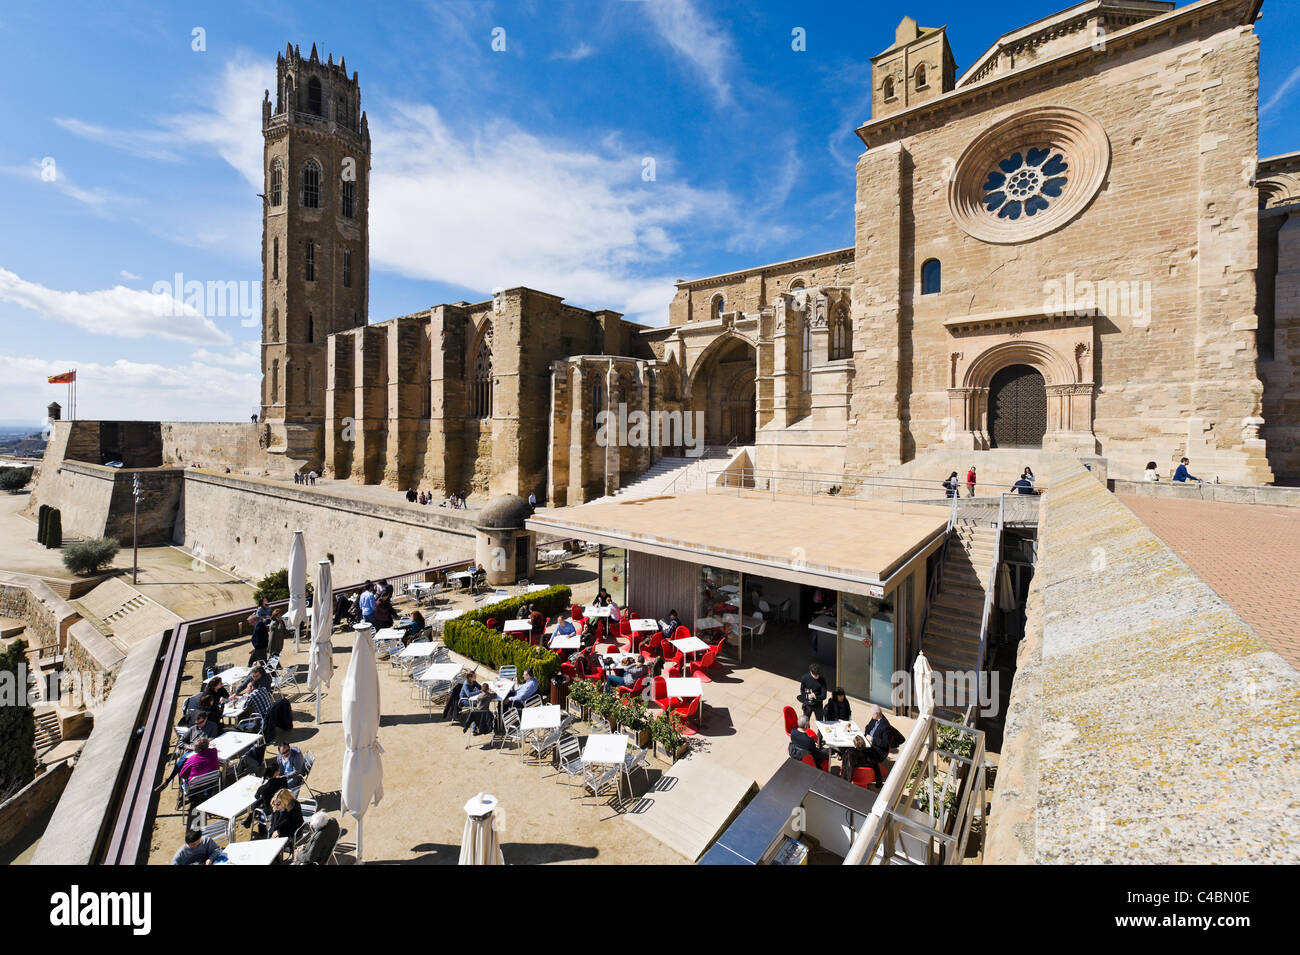 Cafe Terrace Overlooking The Seu Vella Old Cathedral